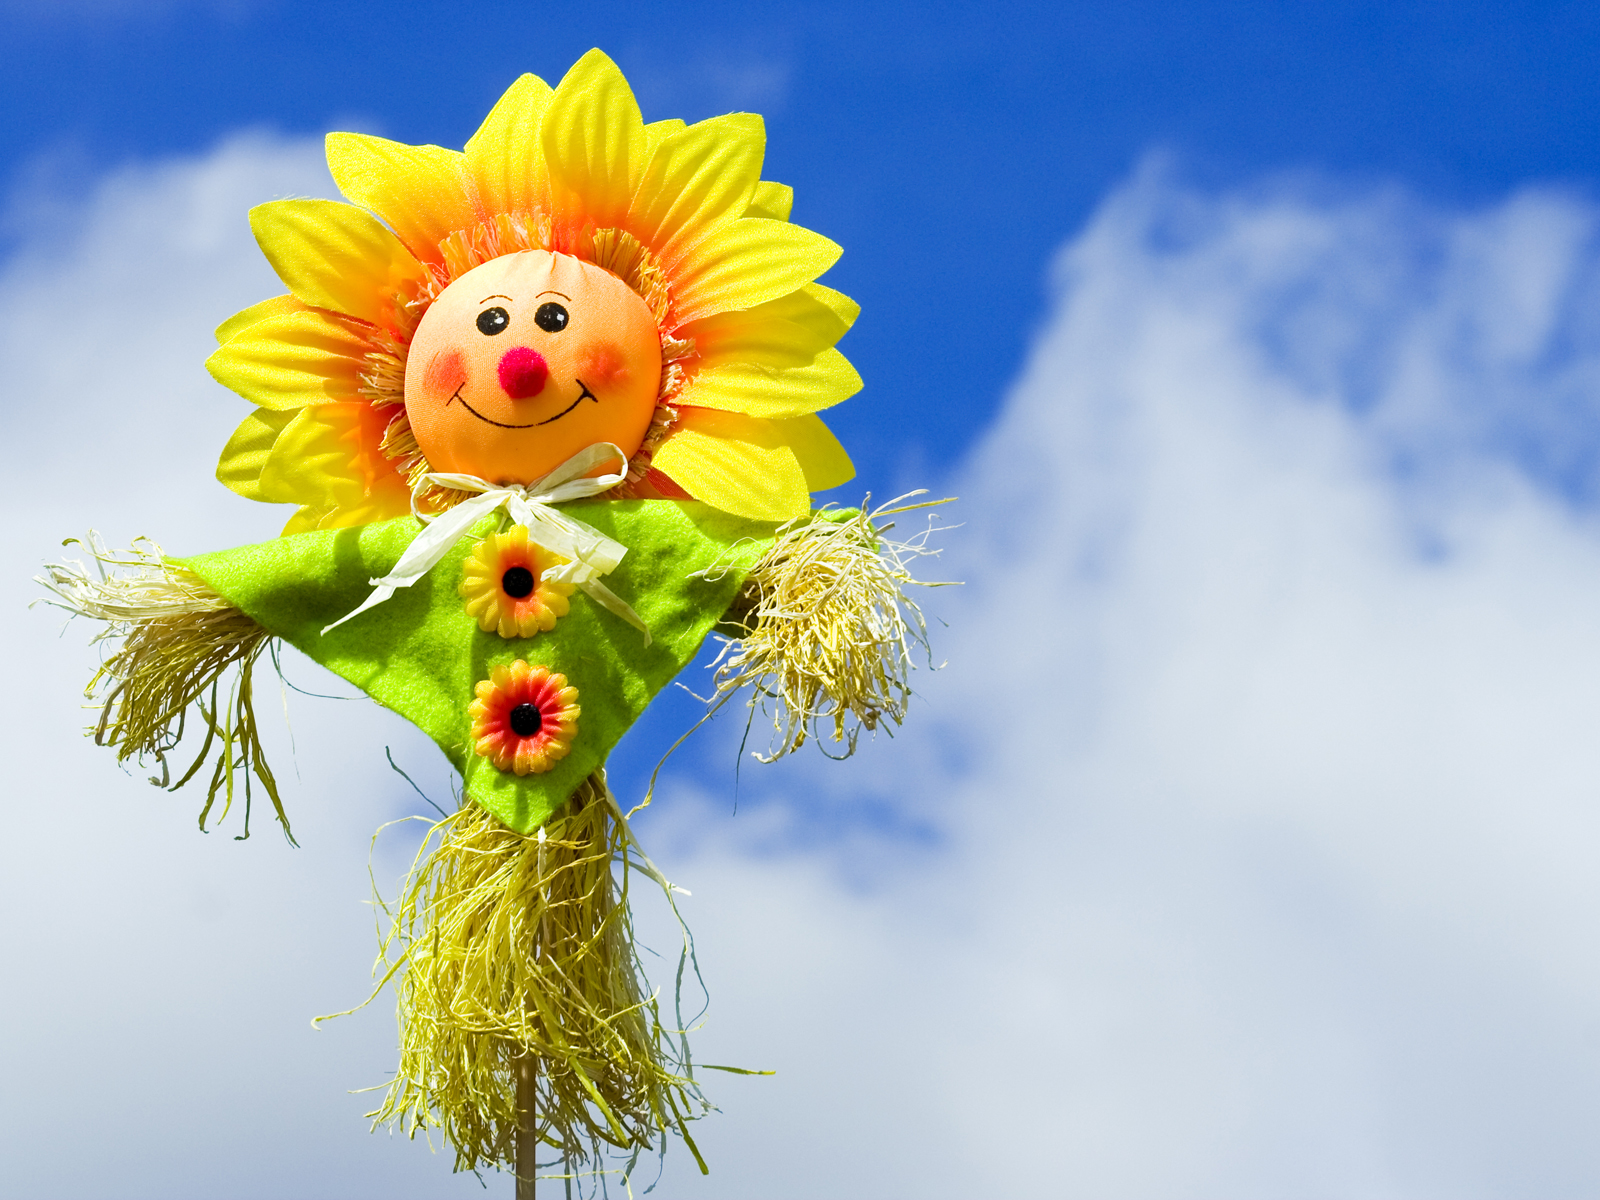 Cute Red Blue And Yellow Hd Graphic Flowers Wallpaper Cute Scarecrow Backgrounds Presnetation Ppt Backgrounds